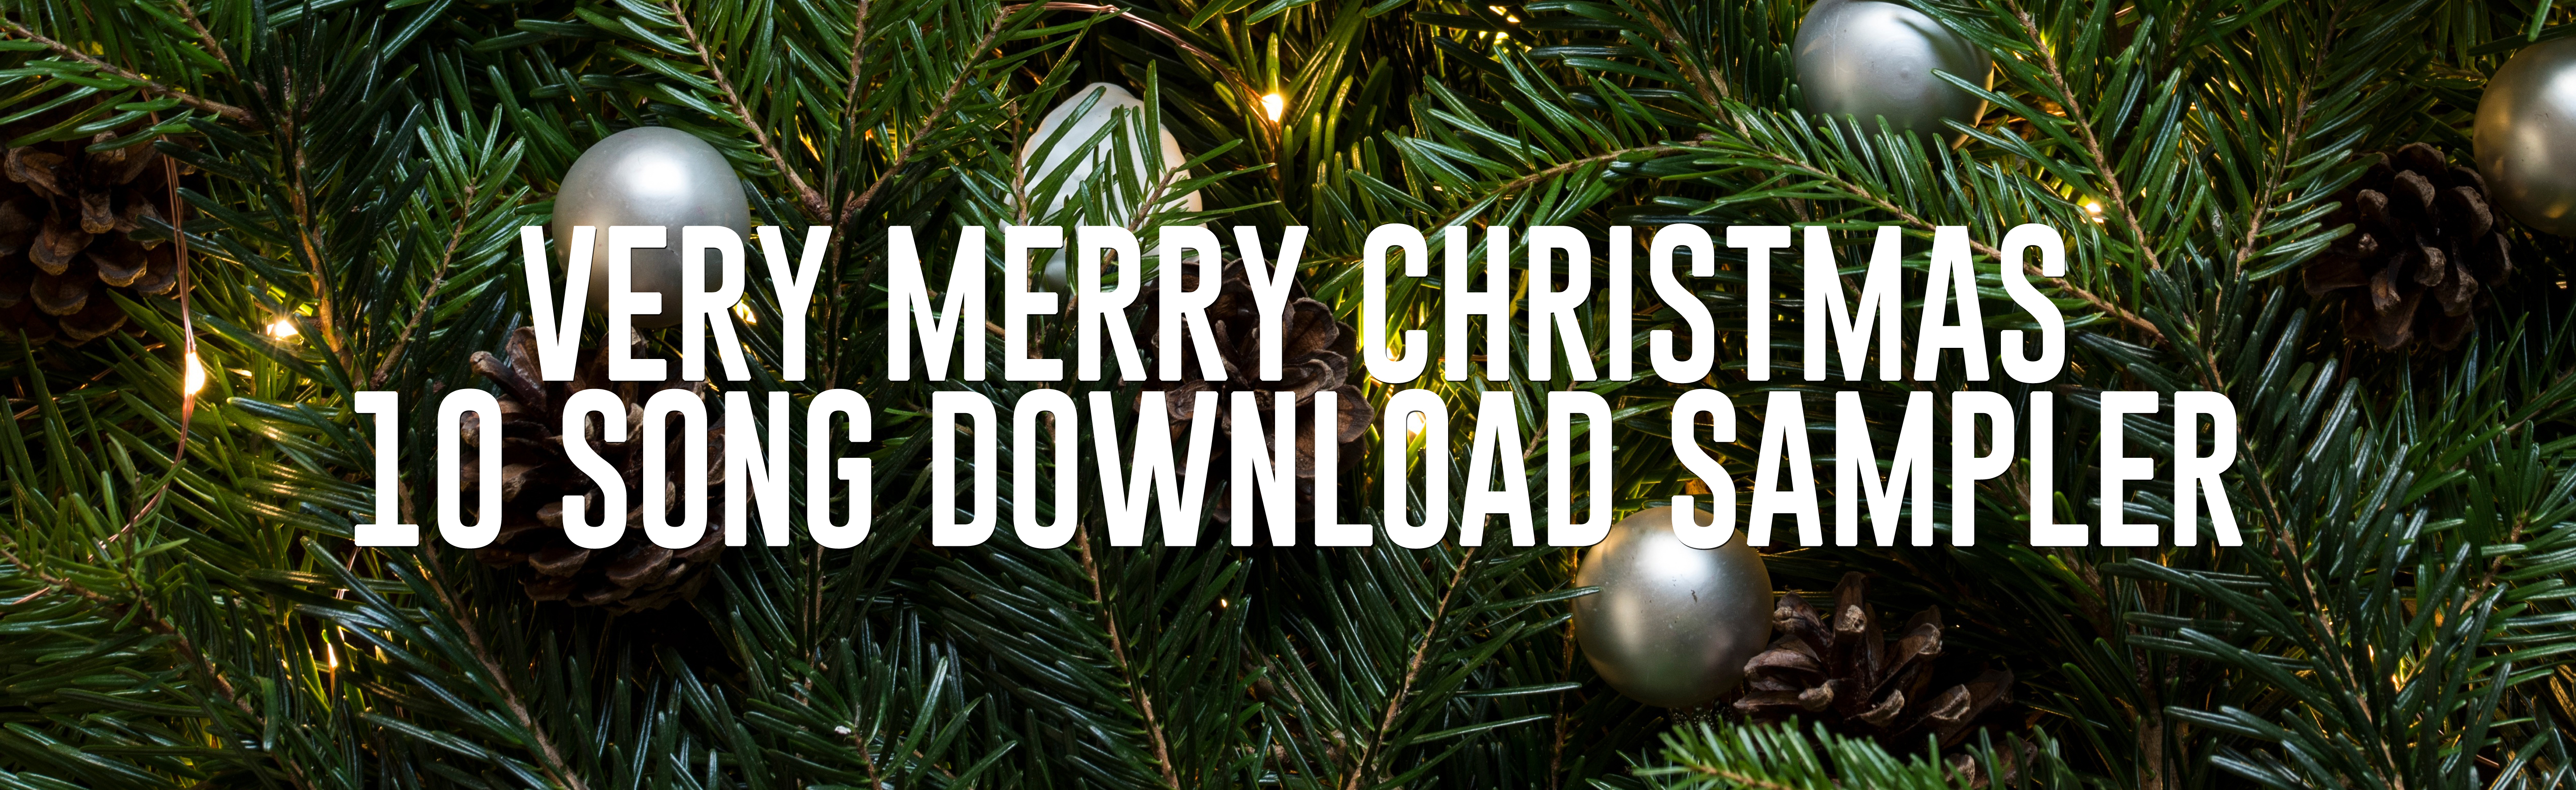 FreeCCM\'s Very Merry Christmas Exclusive 10 SONG DOWNLOAD SAMPLER ...